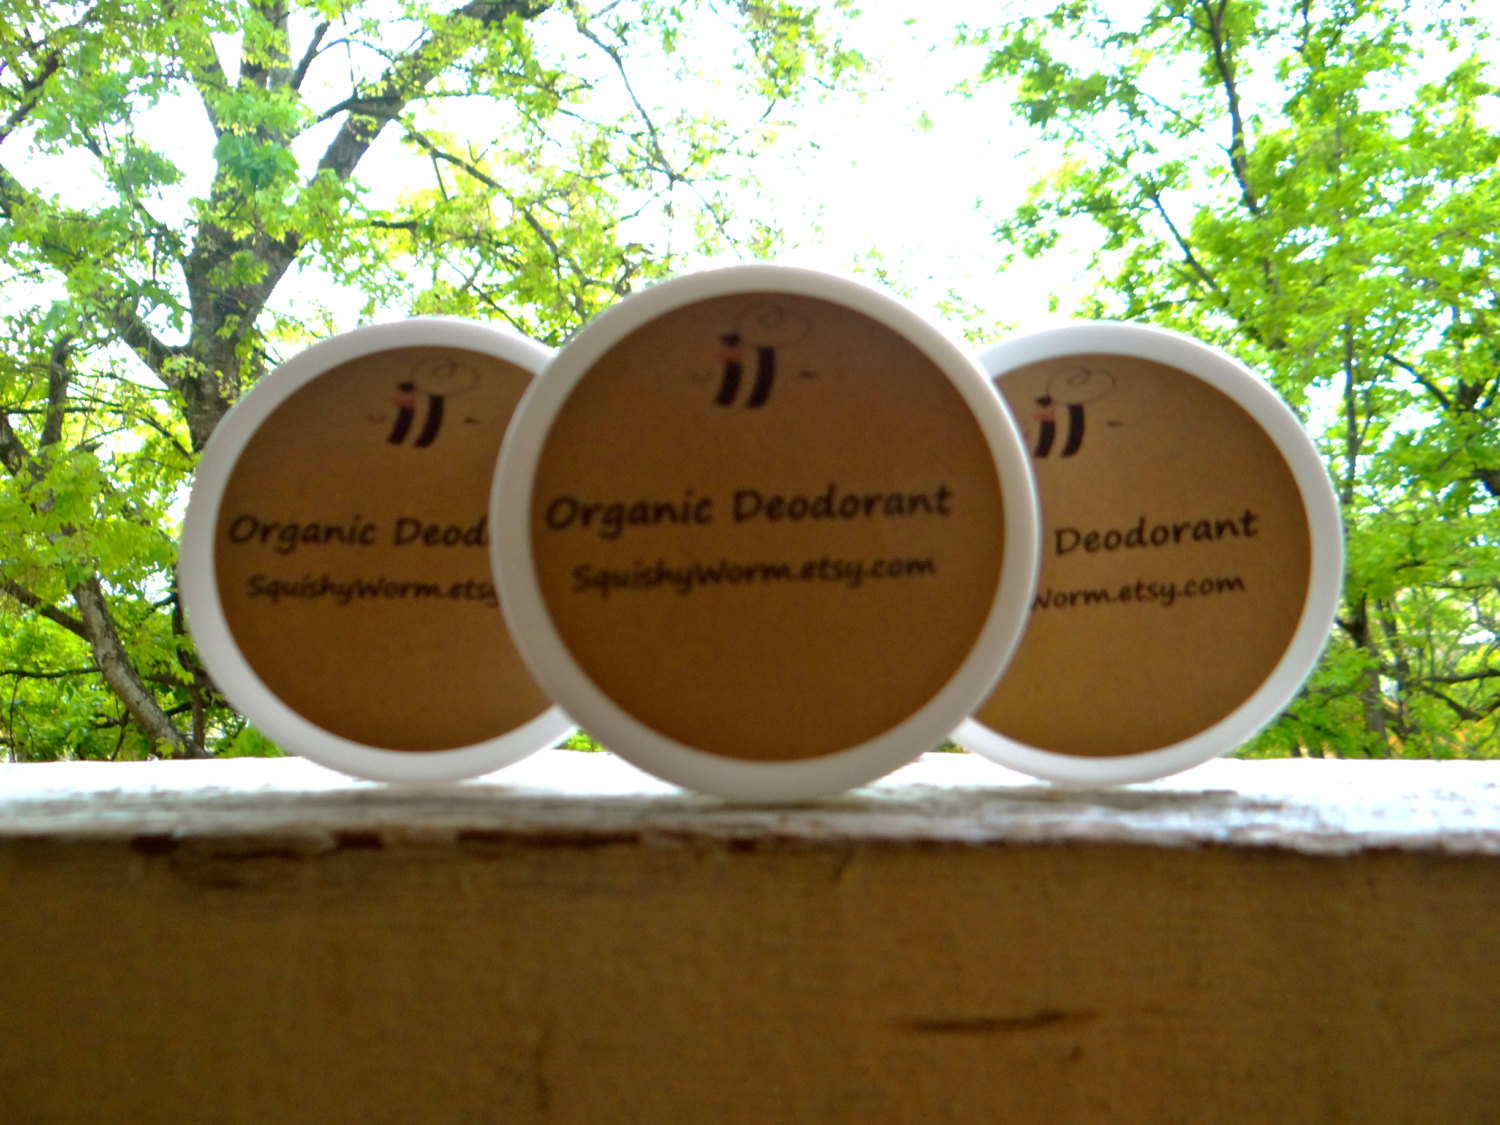 http://squishyworm.storenvy.com/products/3280671-organic-deodorant-paste-lavender-and-tea-tree-no-harsh-chemicals-vegan-a